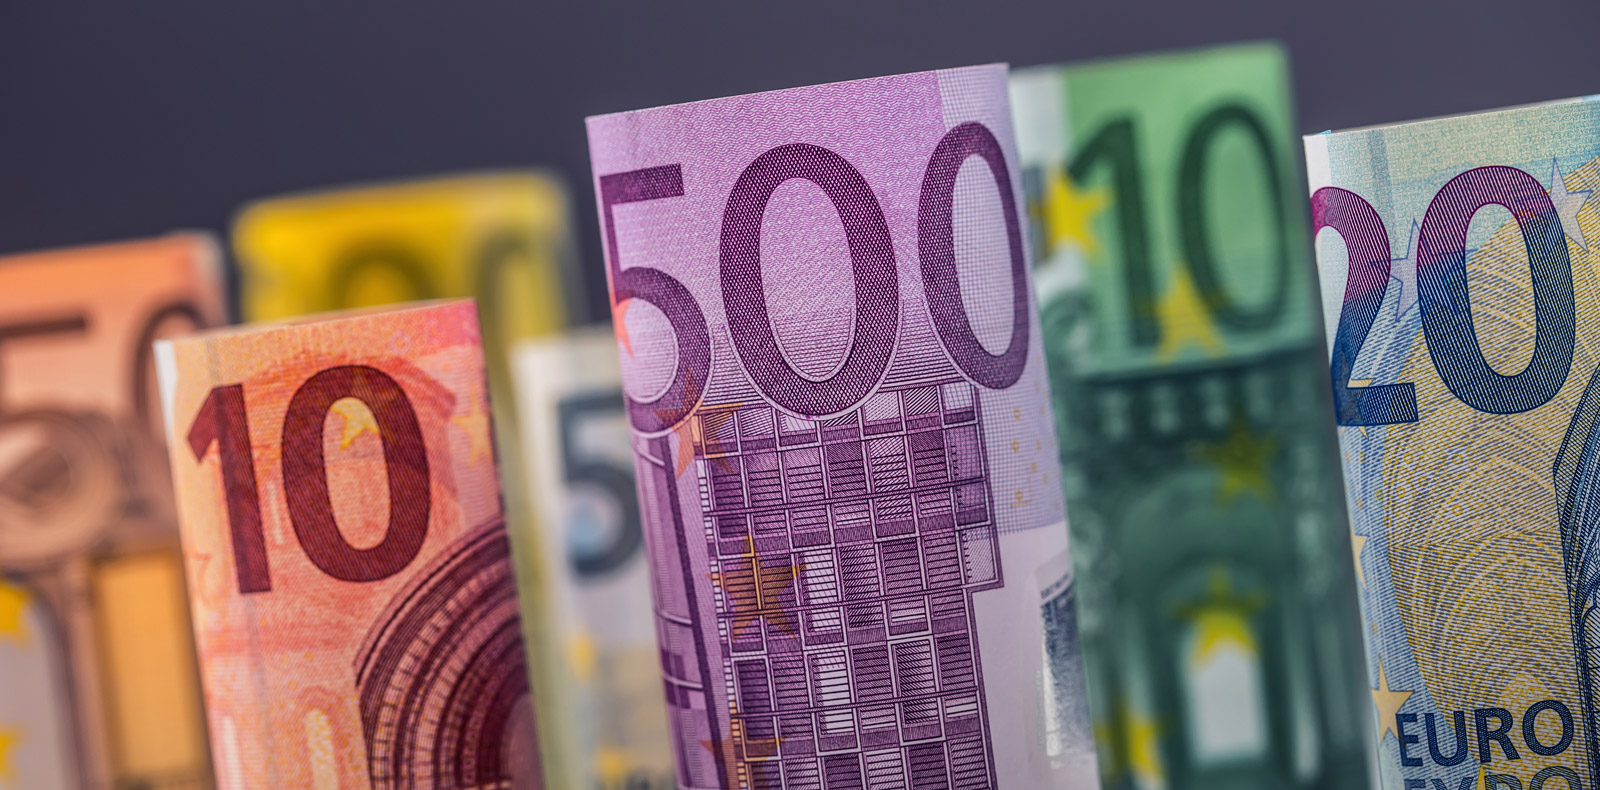 Will the Euro retain its strength this year?